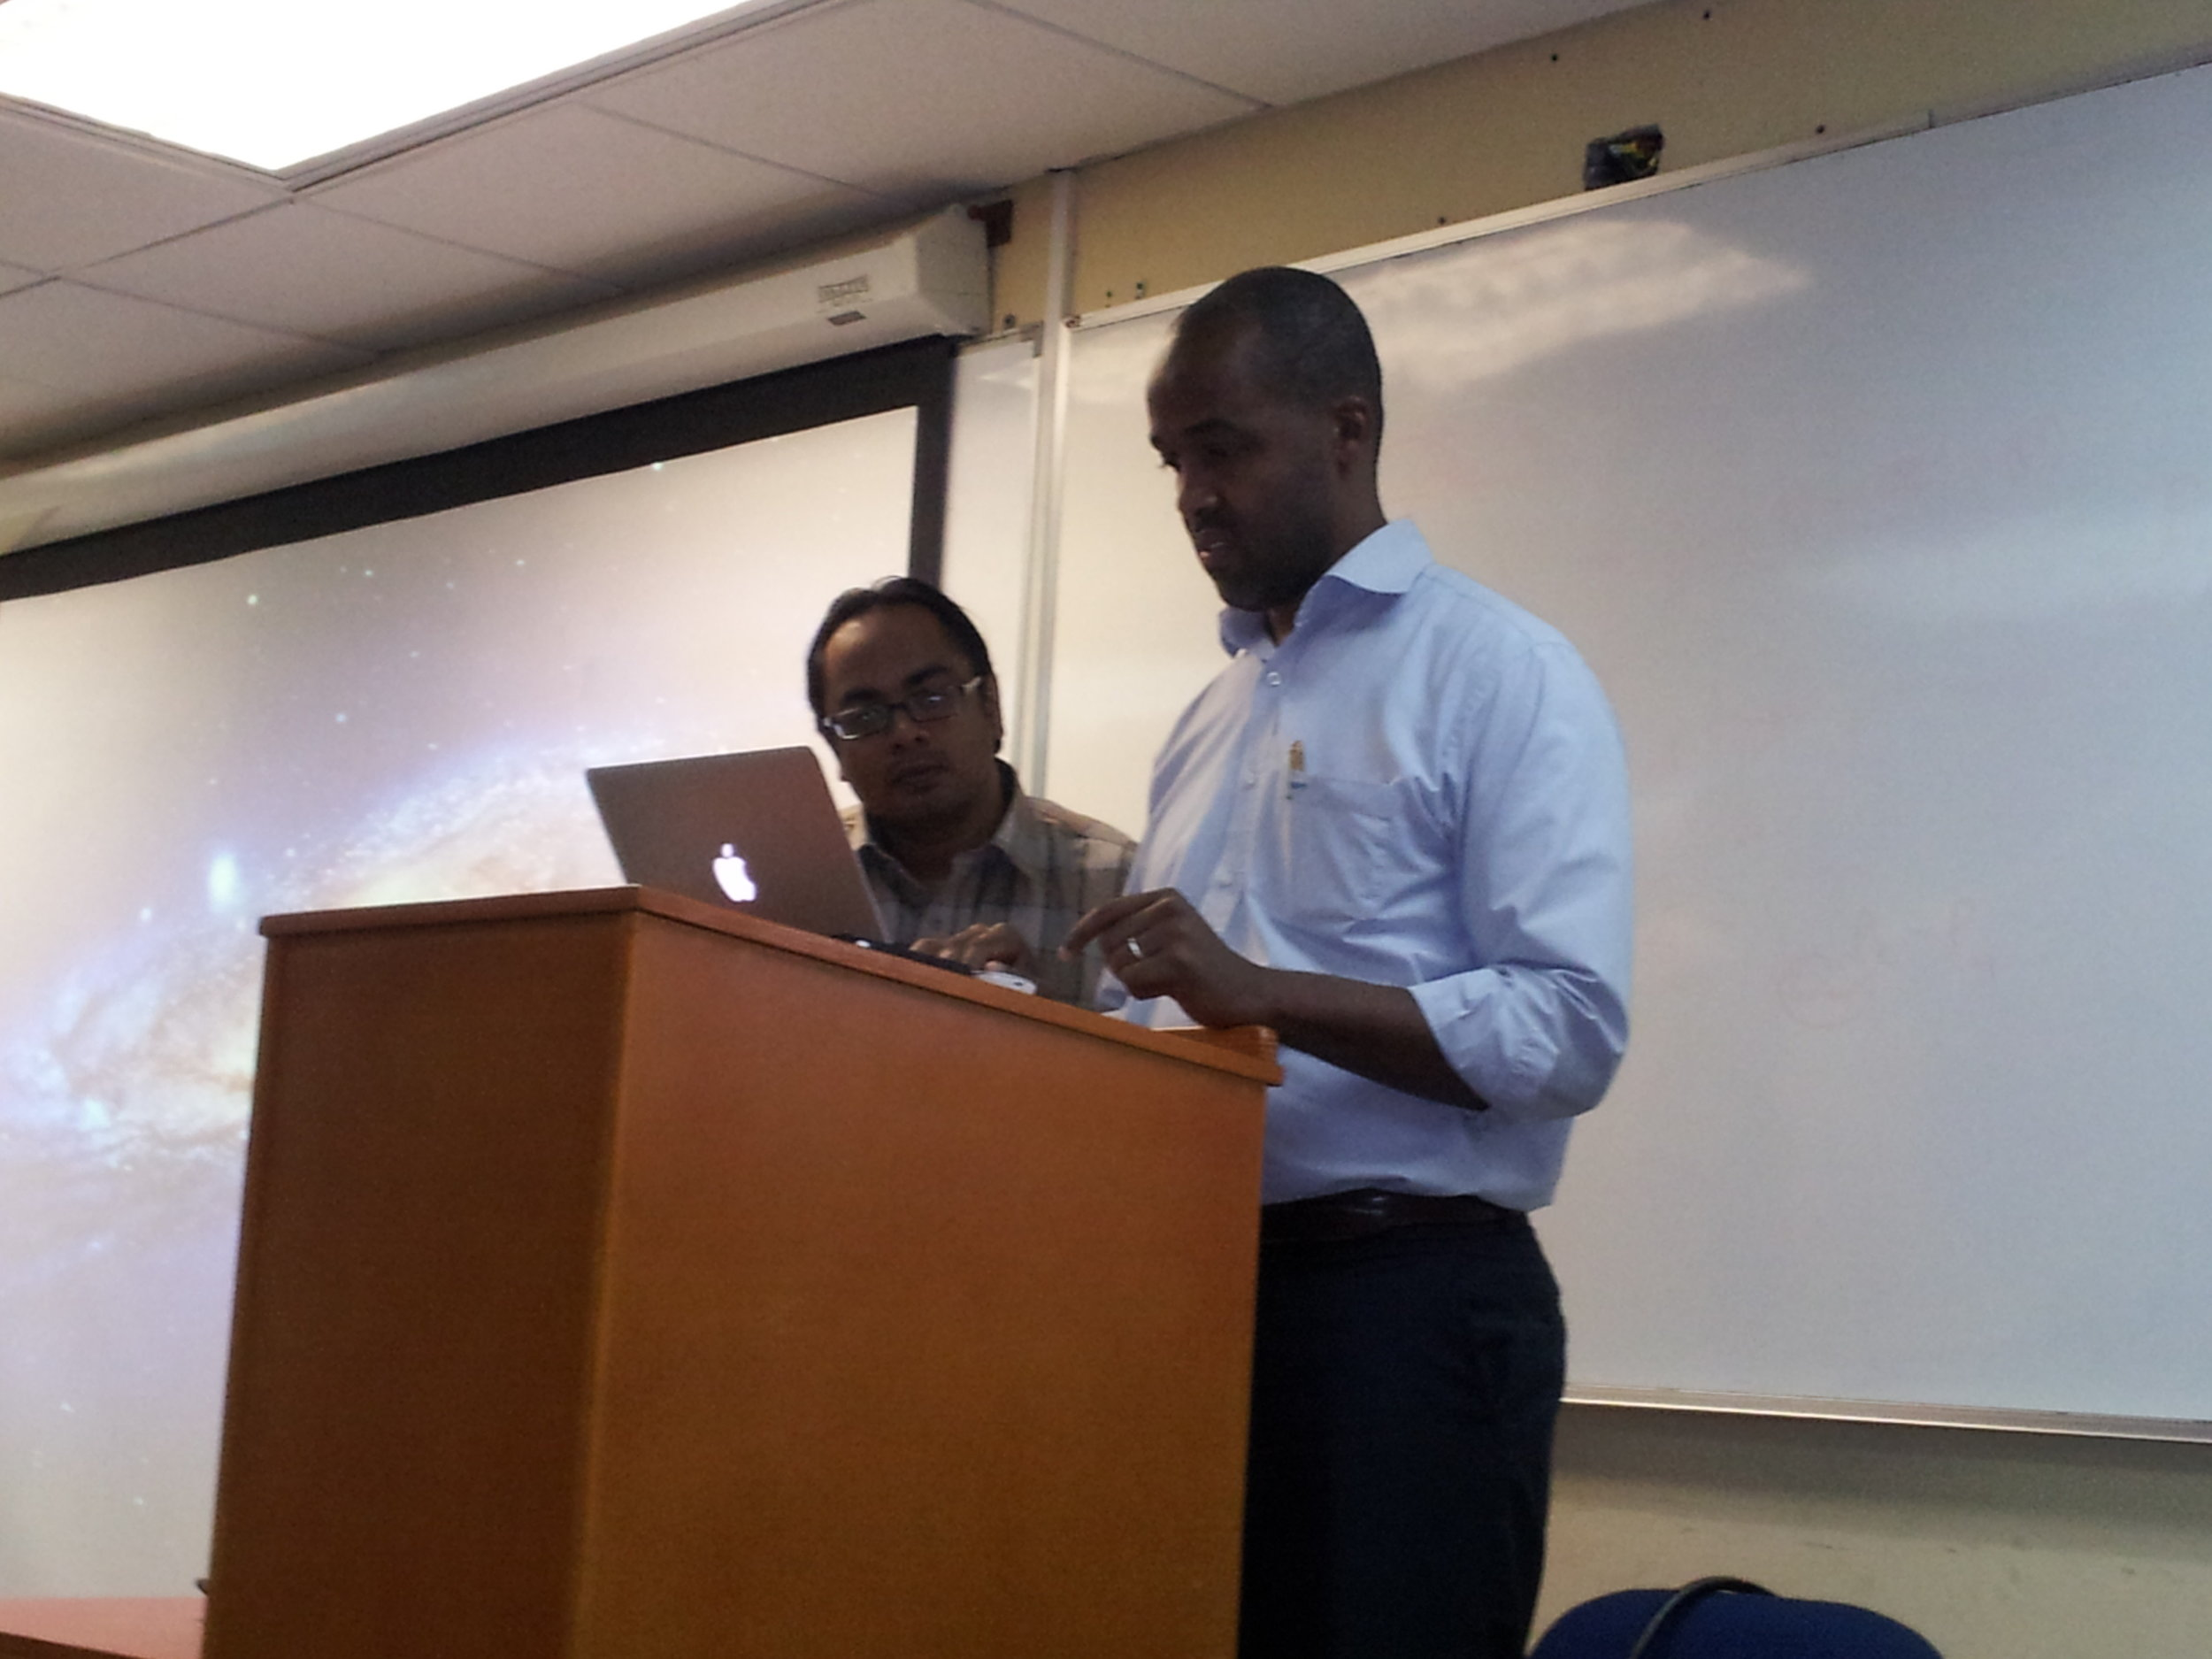 CAPTION: Dr Kenfield Griffith, CEO, mSurvey and Anil Ramnanan, PhD student at The University of the West Indies (UWI) Department of Computer Studies, at mSurvey's workshop on Data Collection and Surveying using Mobile Technology, held at the Max Richards Building, Faculty of Engineering , UWI St Augustine on March 28, 2014. PHOTO: GERARD BEST